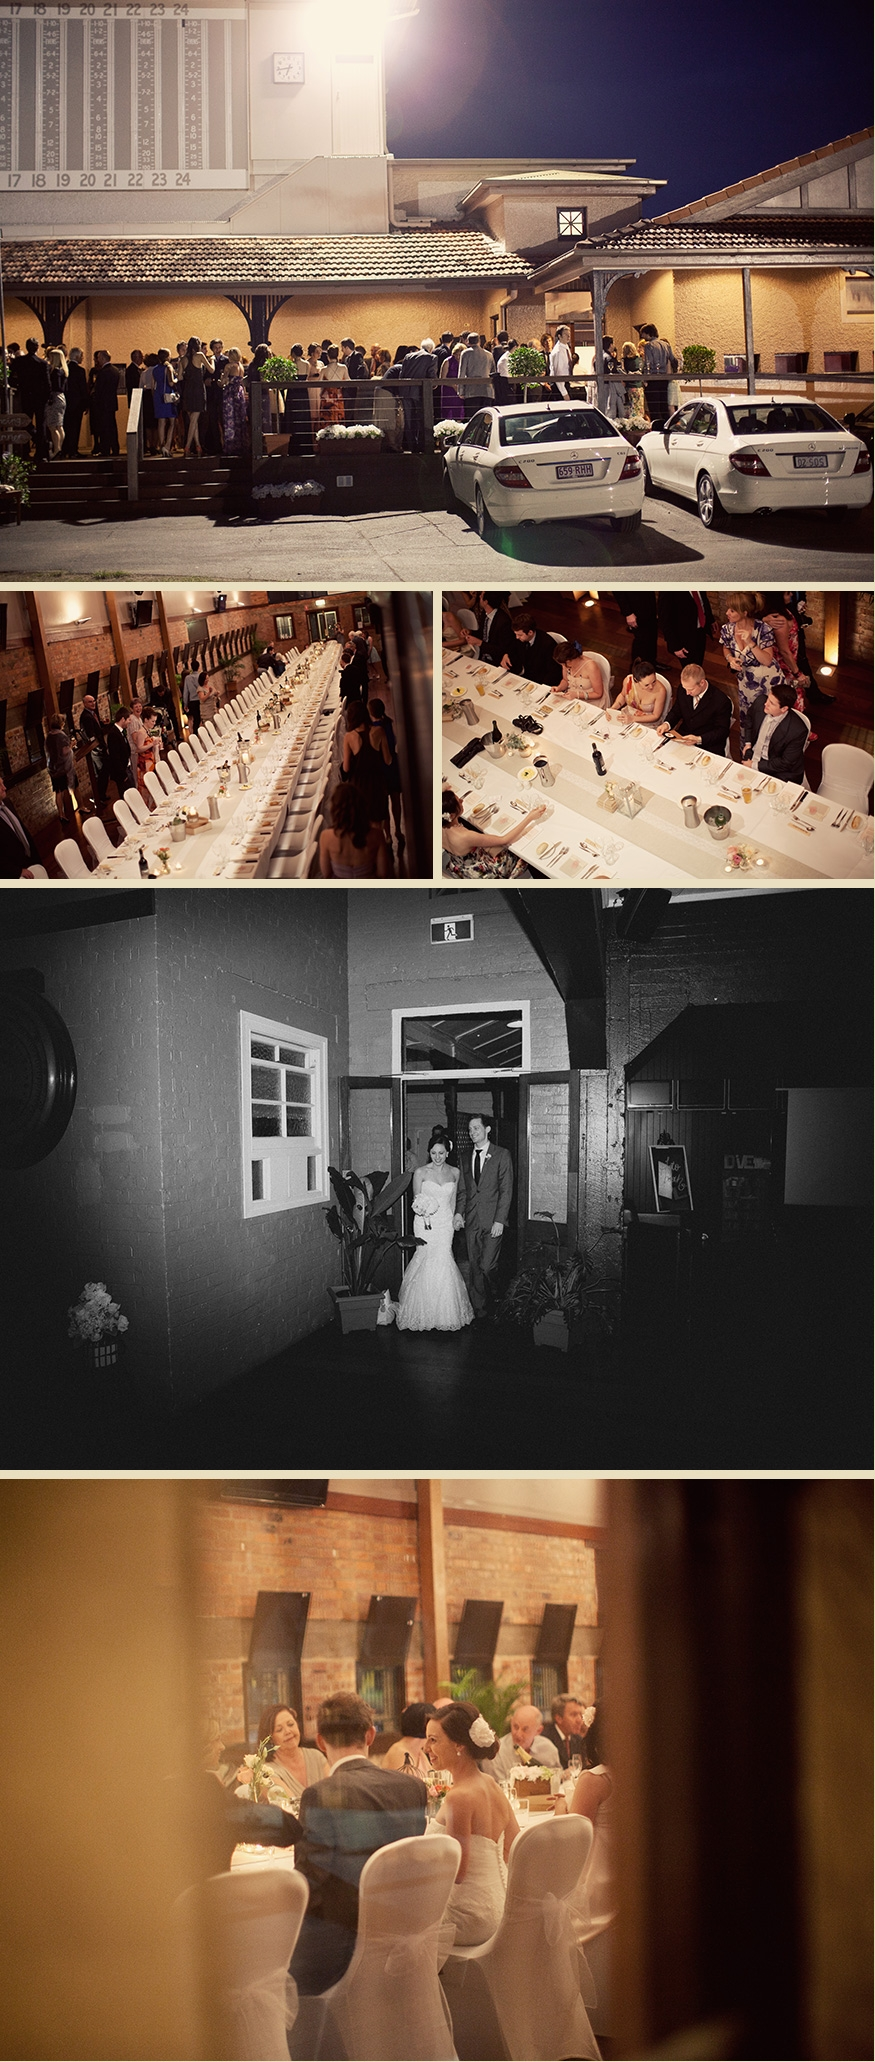 Brisbane Wedding Phoographer Blog-collage-1326365338807